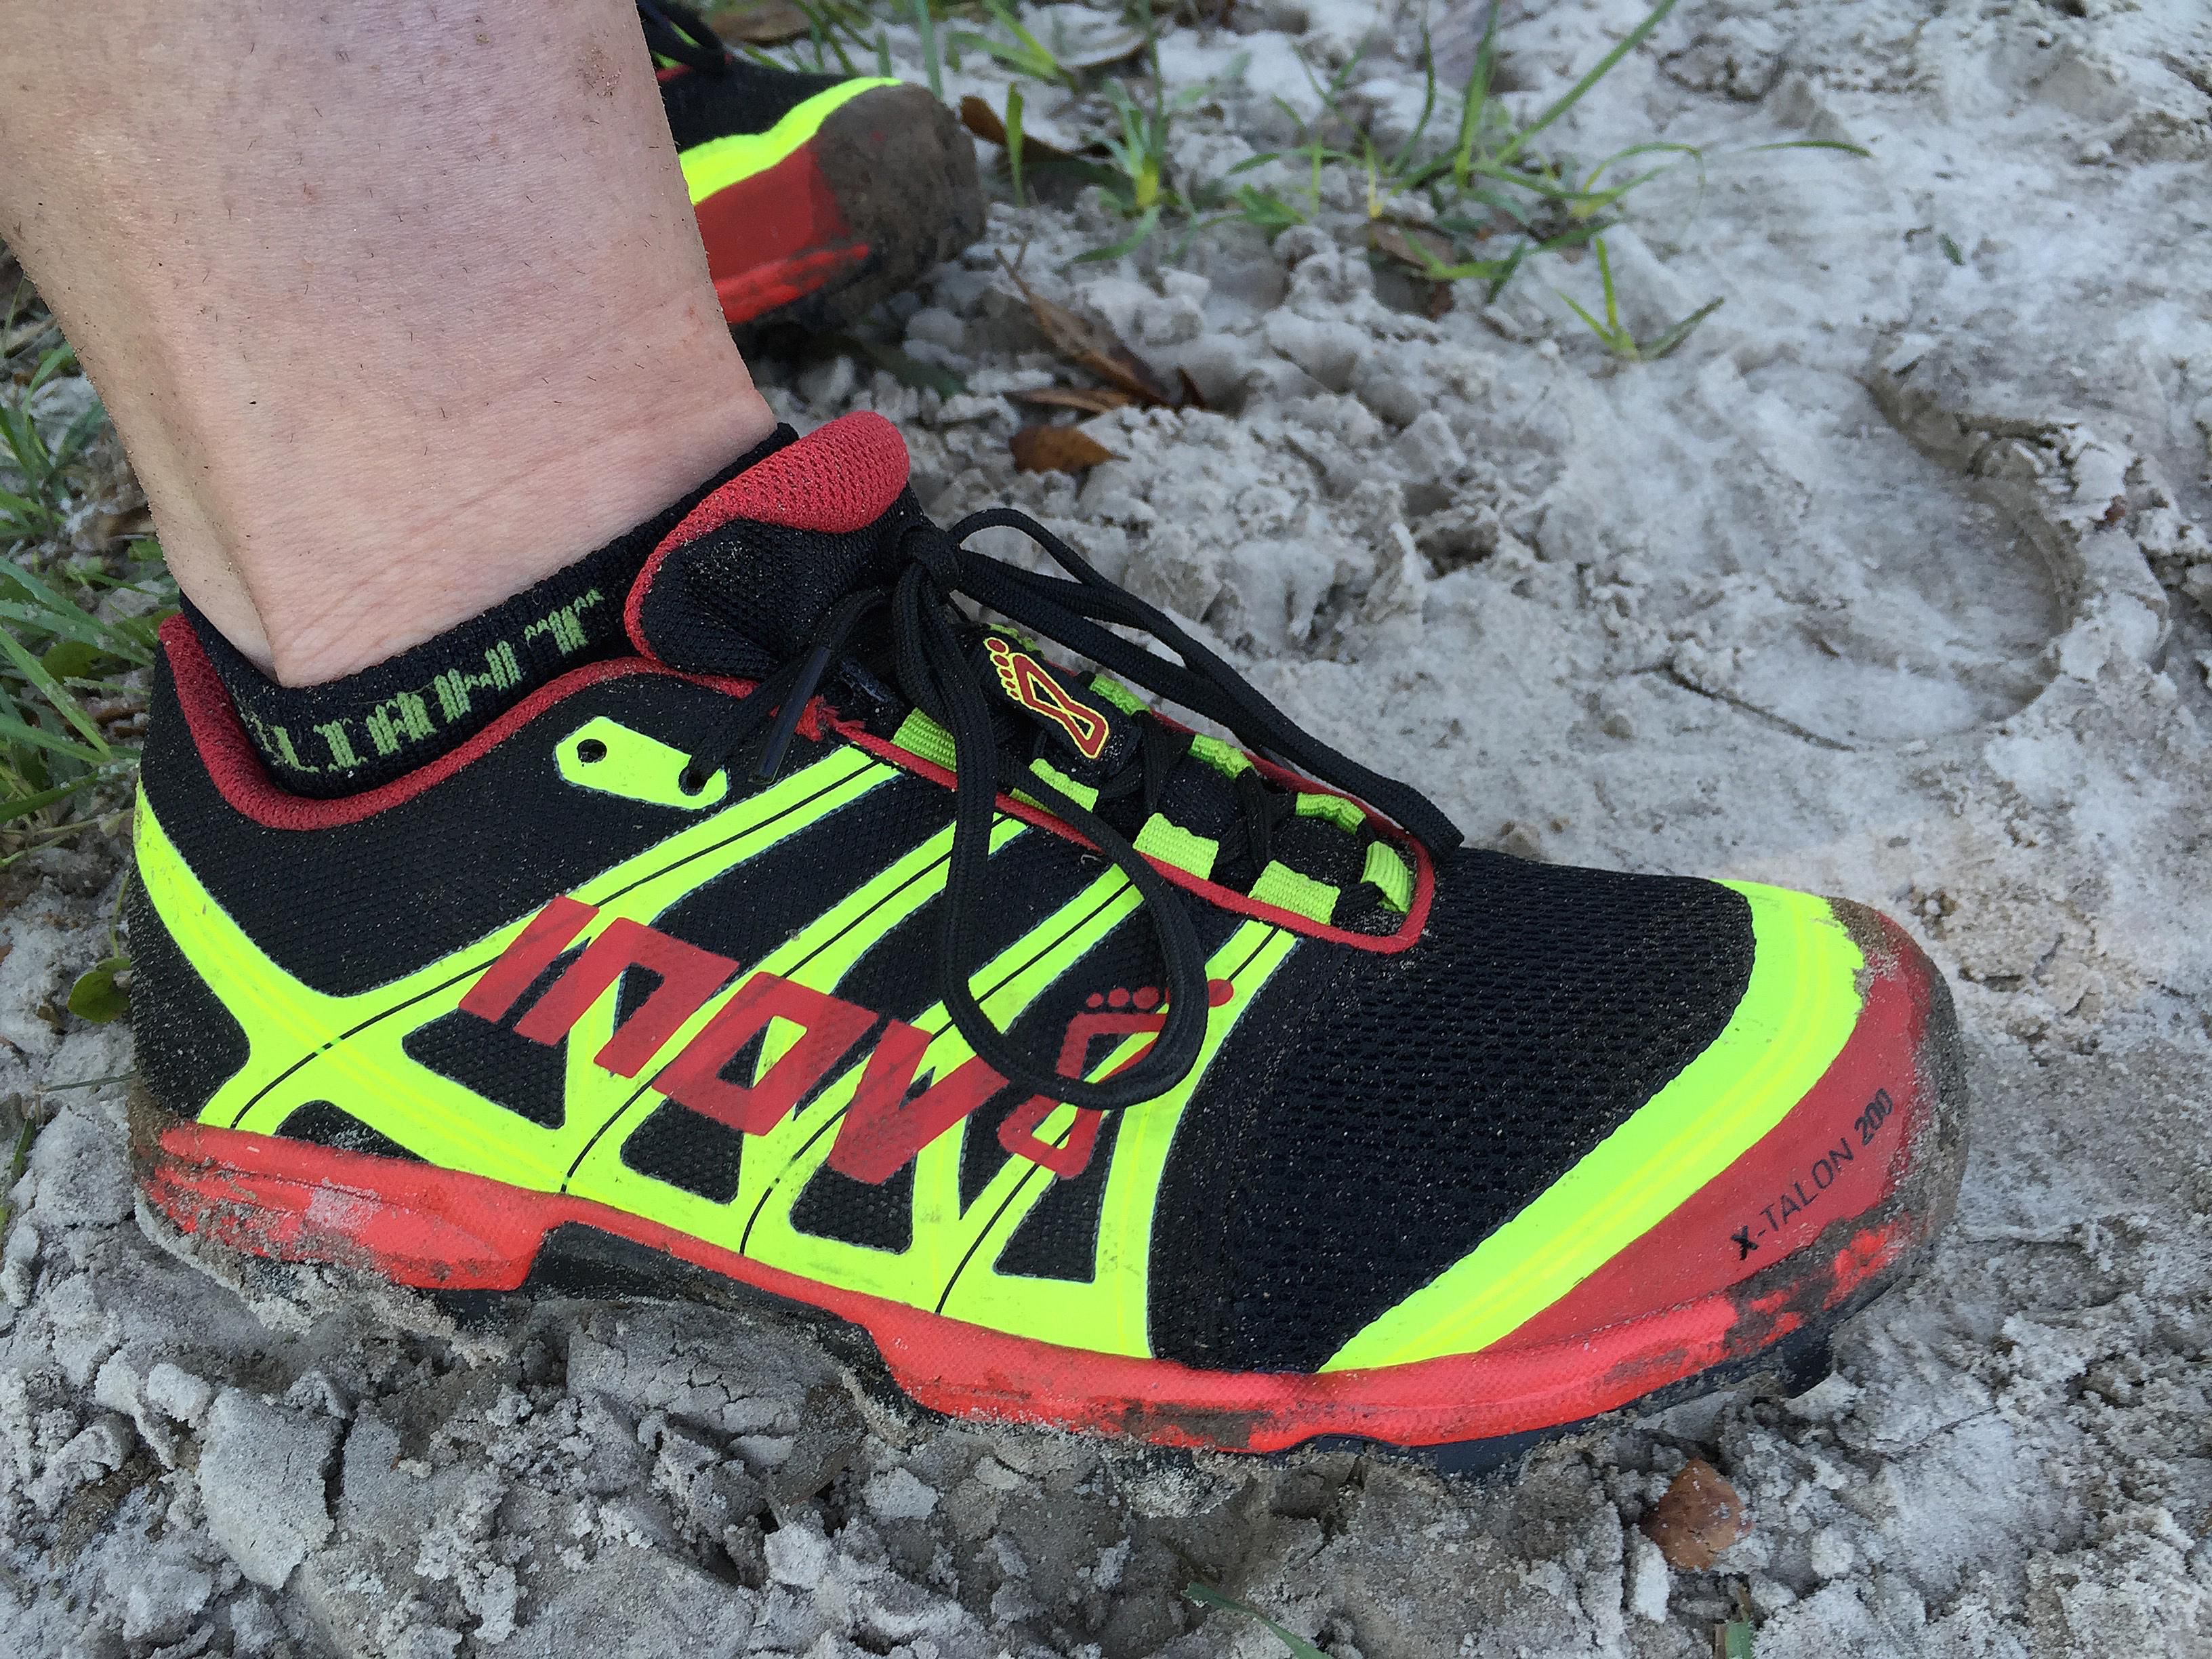 Top Shoes for Mud Runs and Obstacle Races